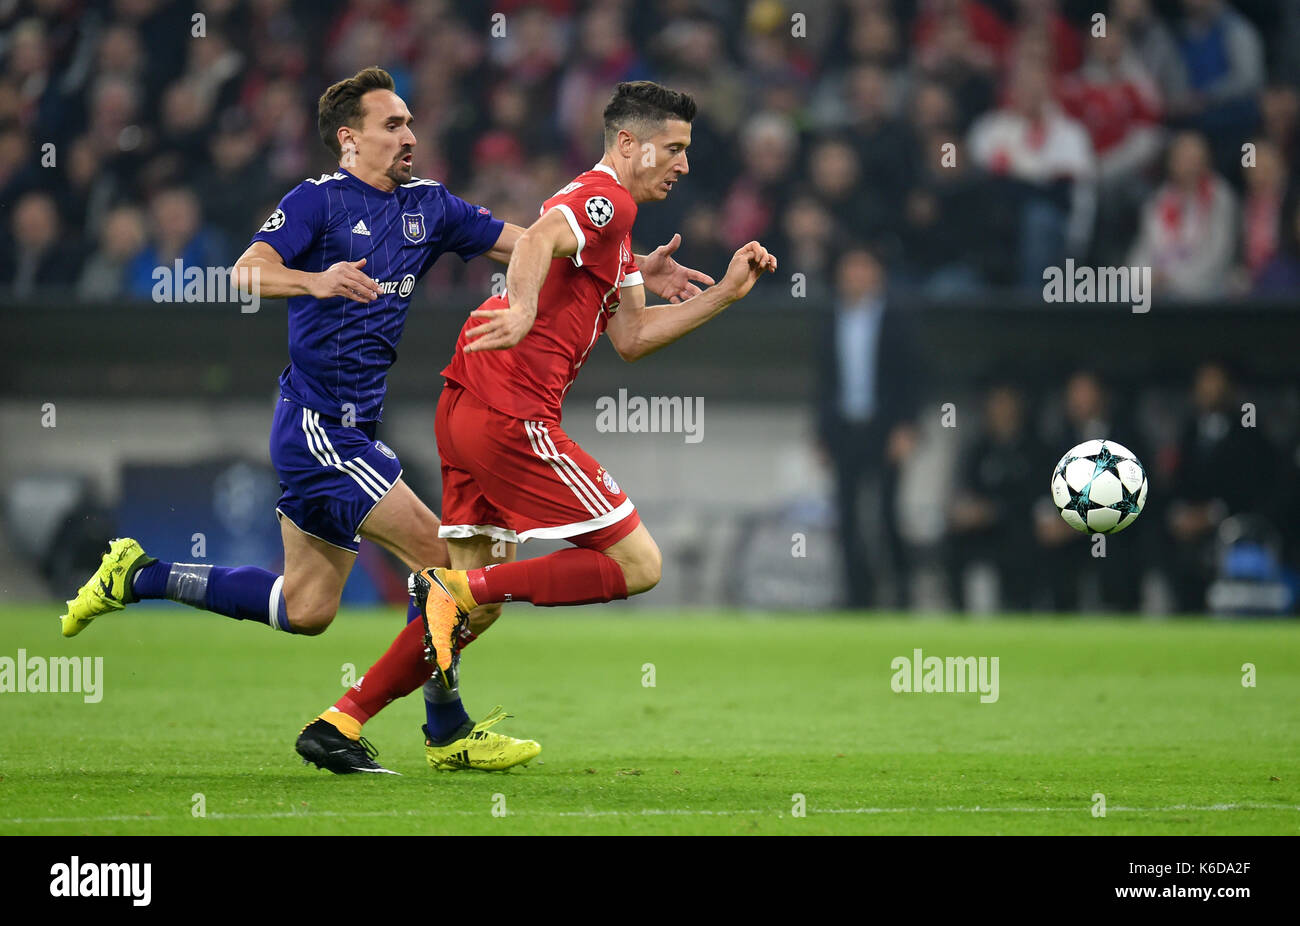 dpatop - Munich's Robert Lewandowski (r) is fouled by Anderlecht's Sven Kums during the Champions League Group B match between Bayern Munich's and RSC Anderlecht at the Allianz Arena in Munich, Germany, 12 September 2017. Photo: Tobias Hase/dpa - Stock Image